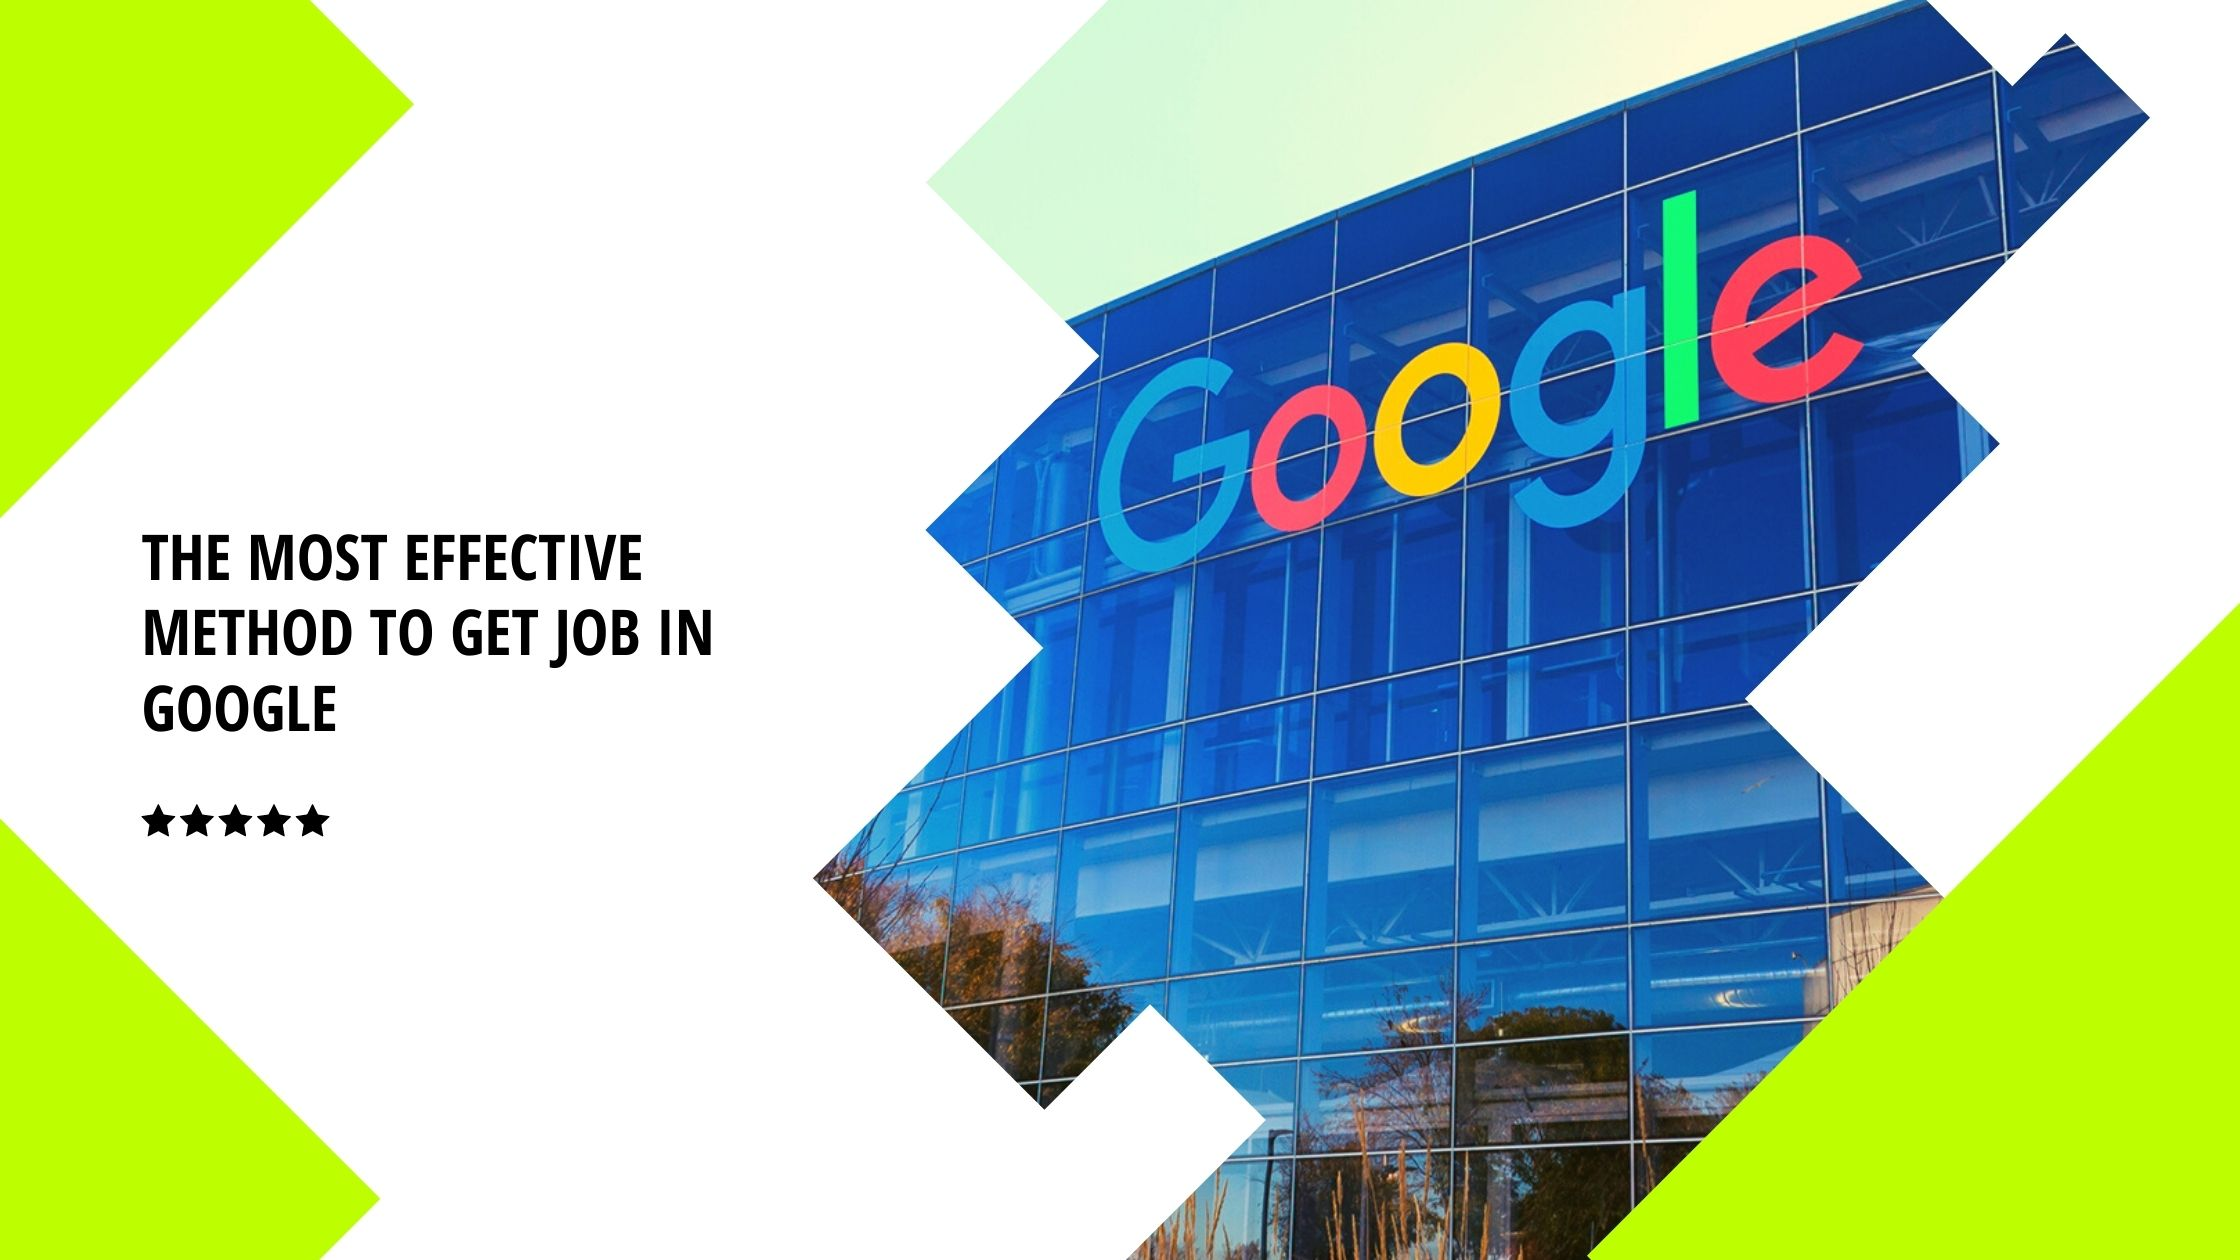 The most effective method to Get Job In Google